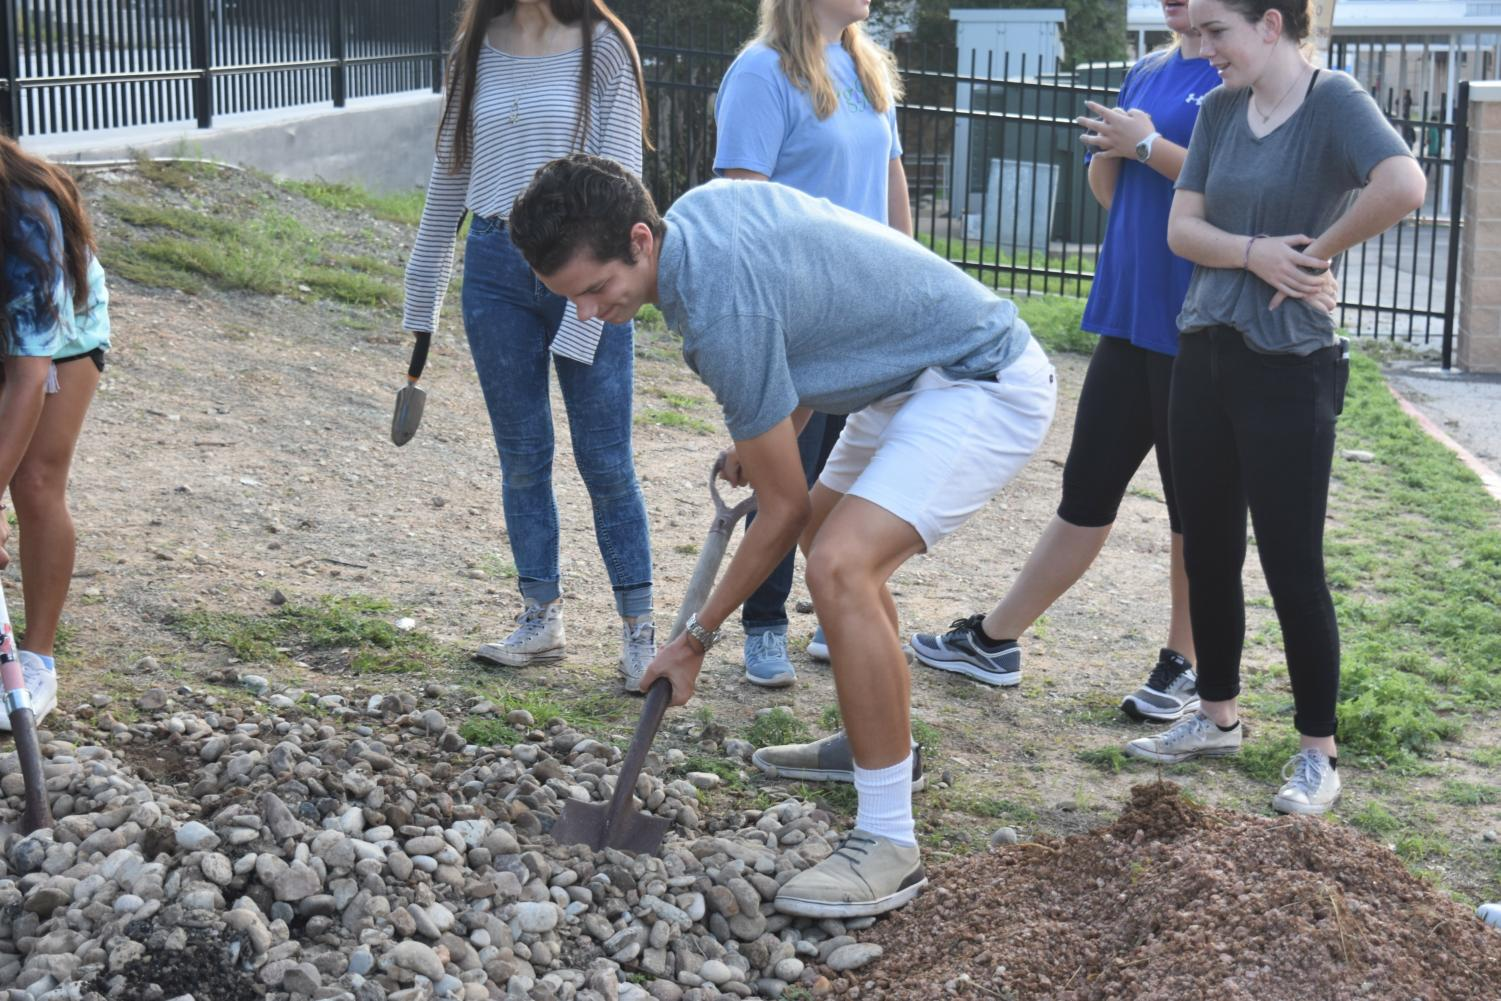 Levi Wilkins shovels rocks and tends to the FHS Memorial Garden with the Interact group.